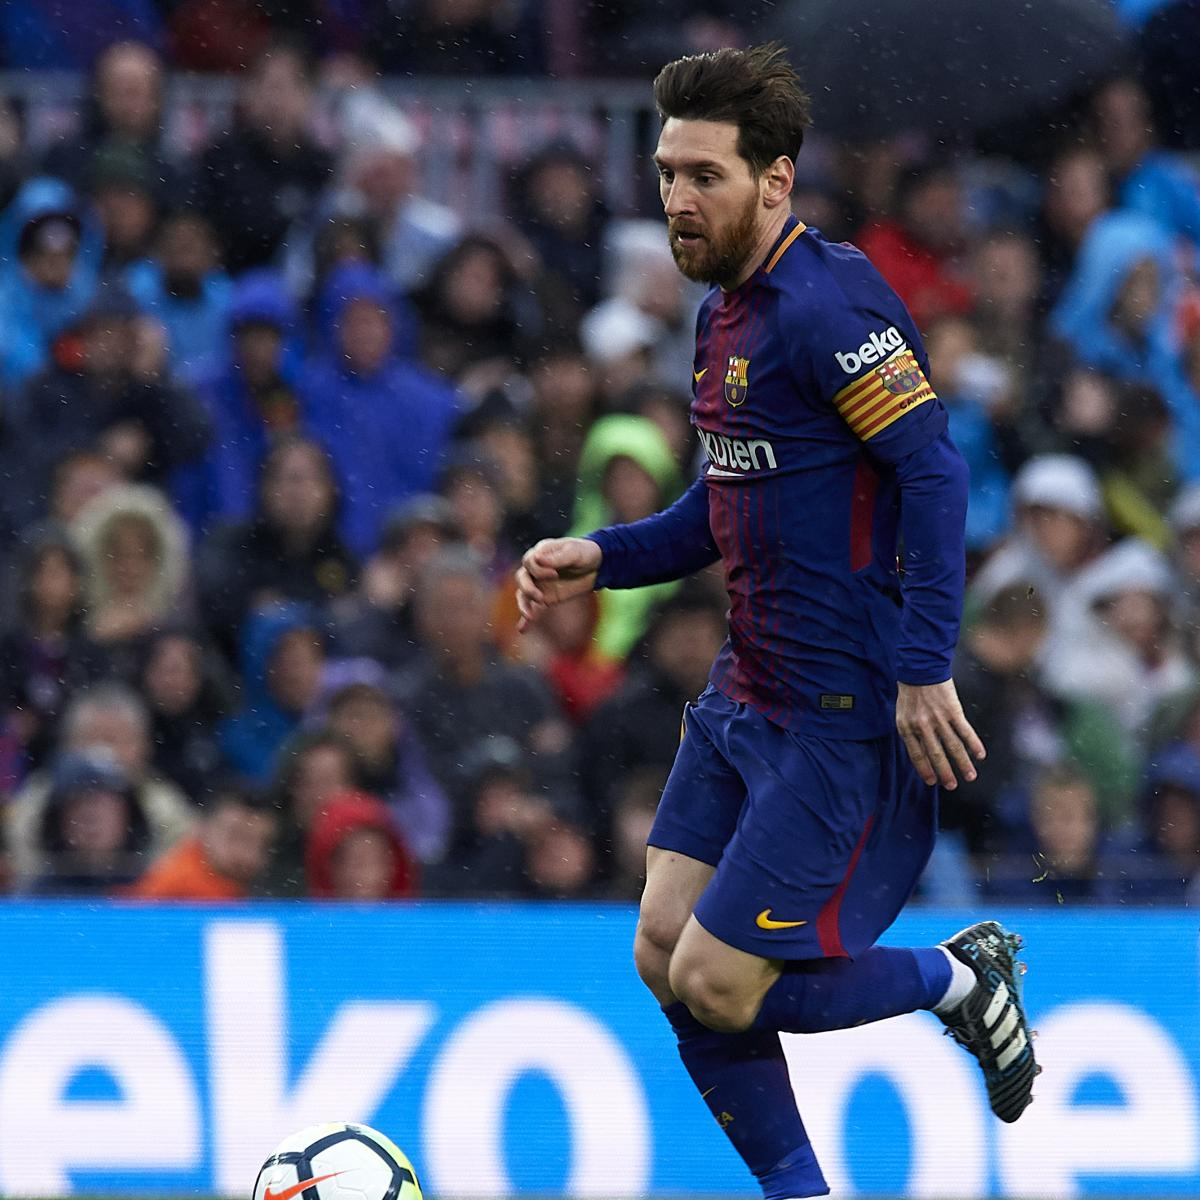 Barcelona vs. Chelsea: Preview, Live Stream, TV Info for UCL Match